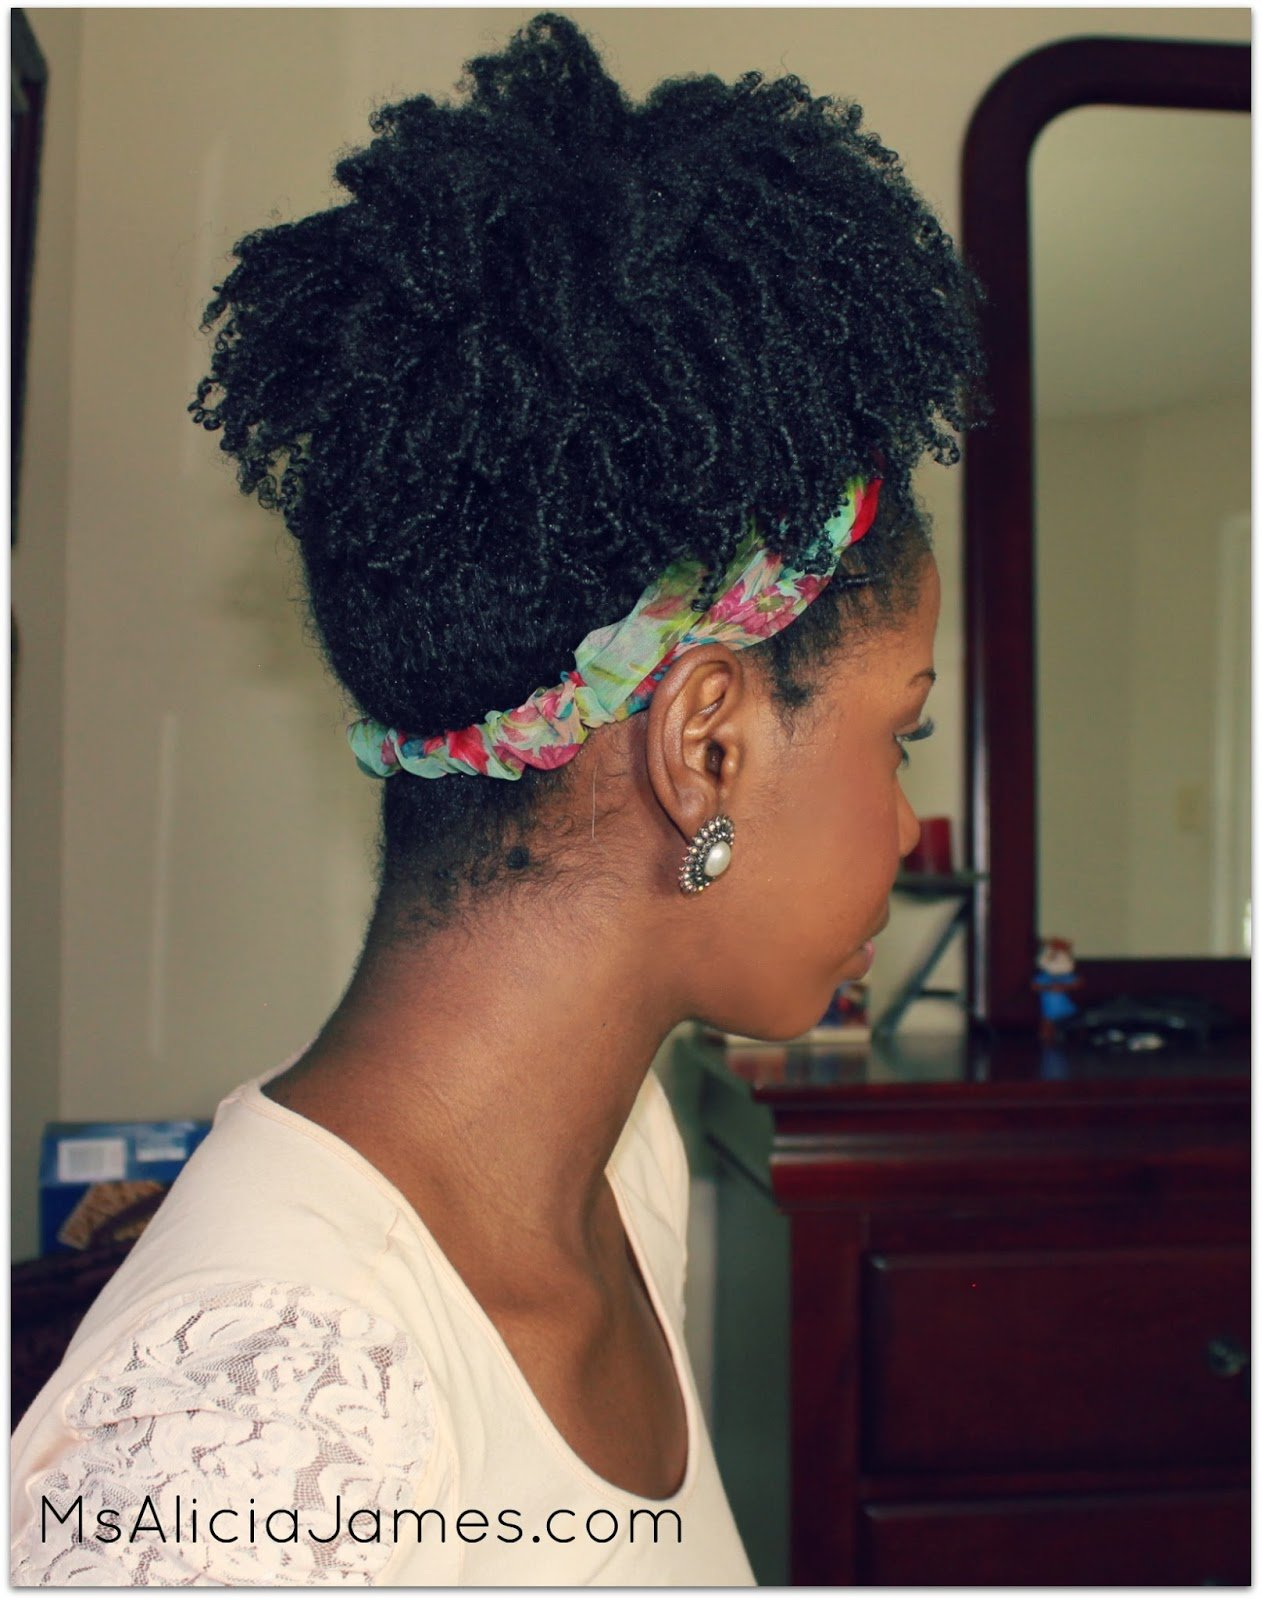 The 7 Day Wash and Go- Natural Hair Care Tips